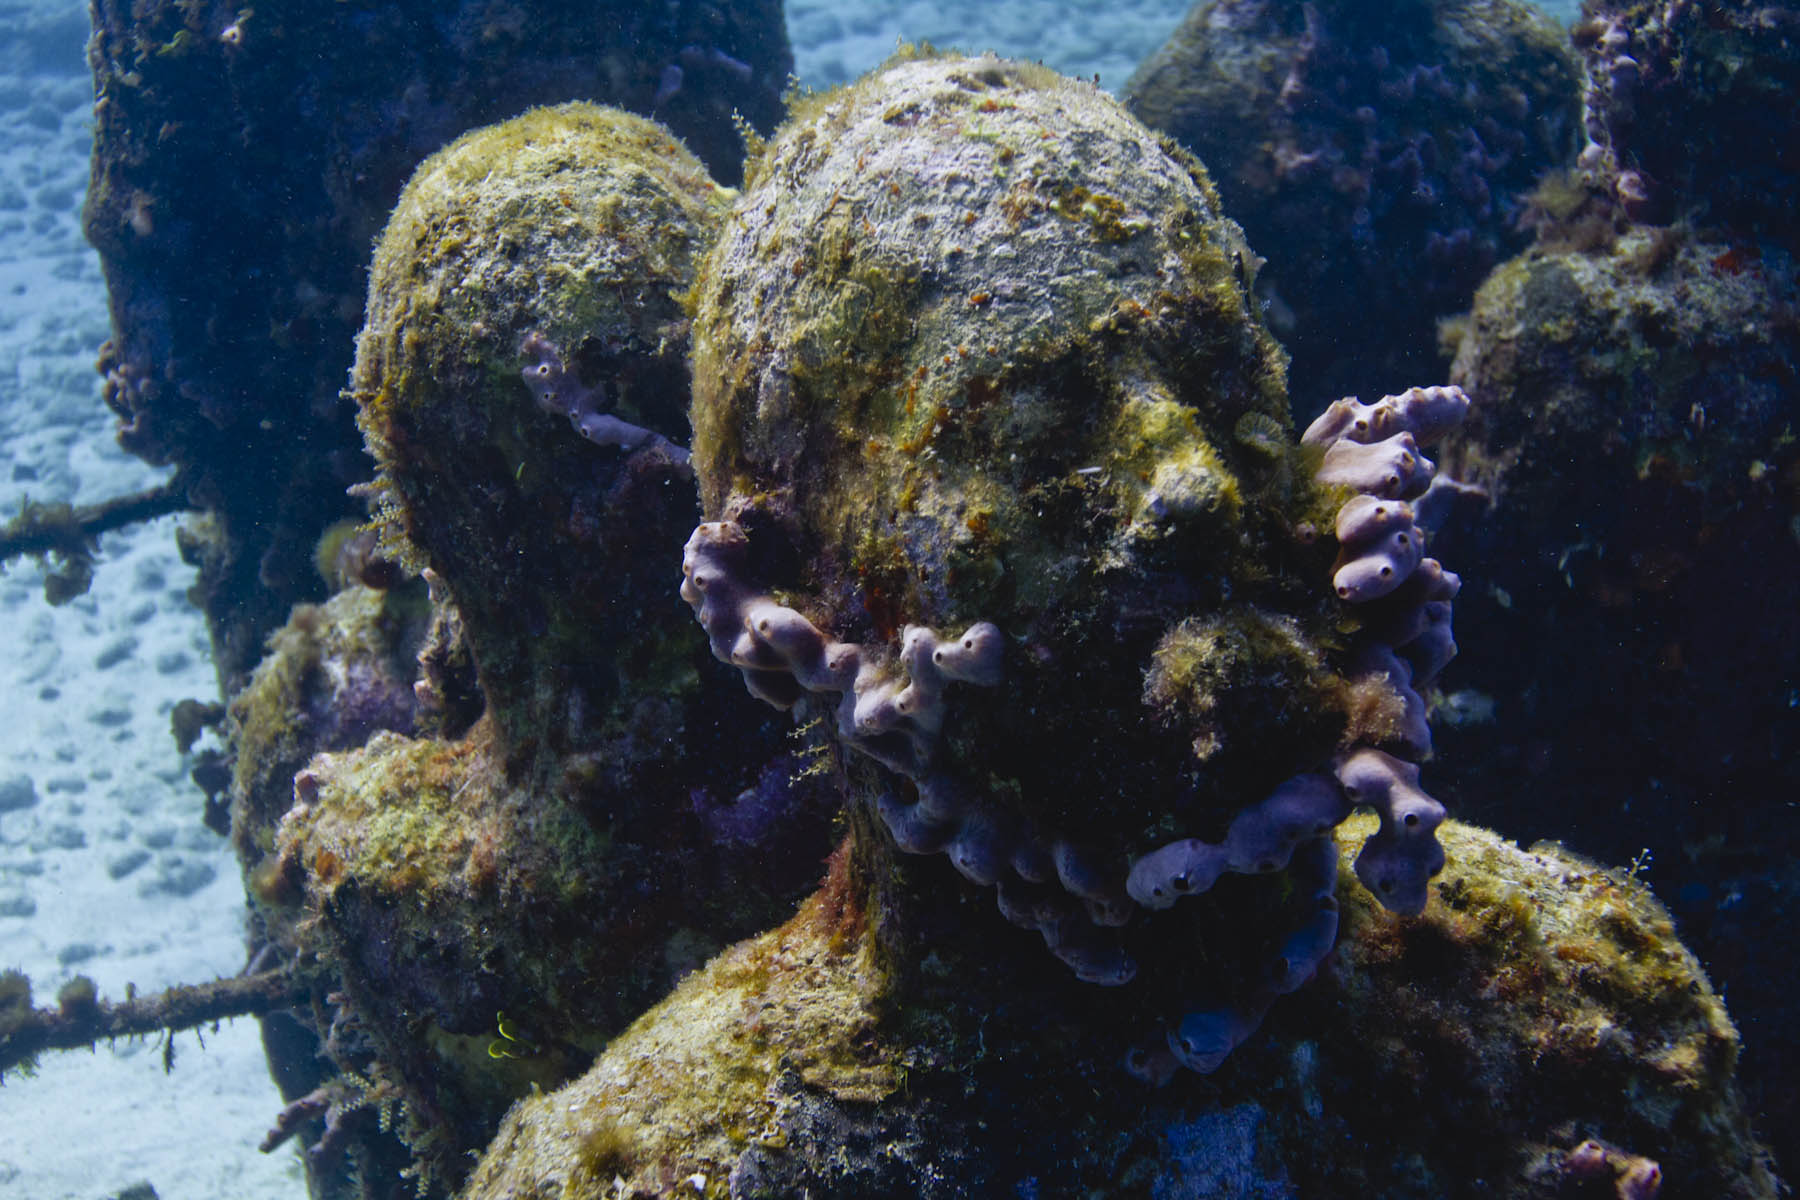 Jason-DeCaires-Taylor-Silent-evolution-underwater-sculpture